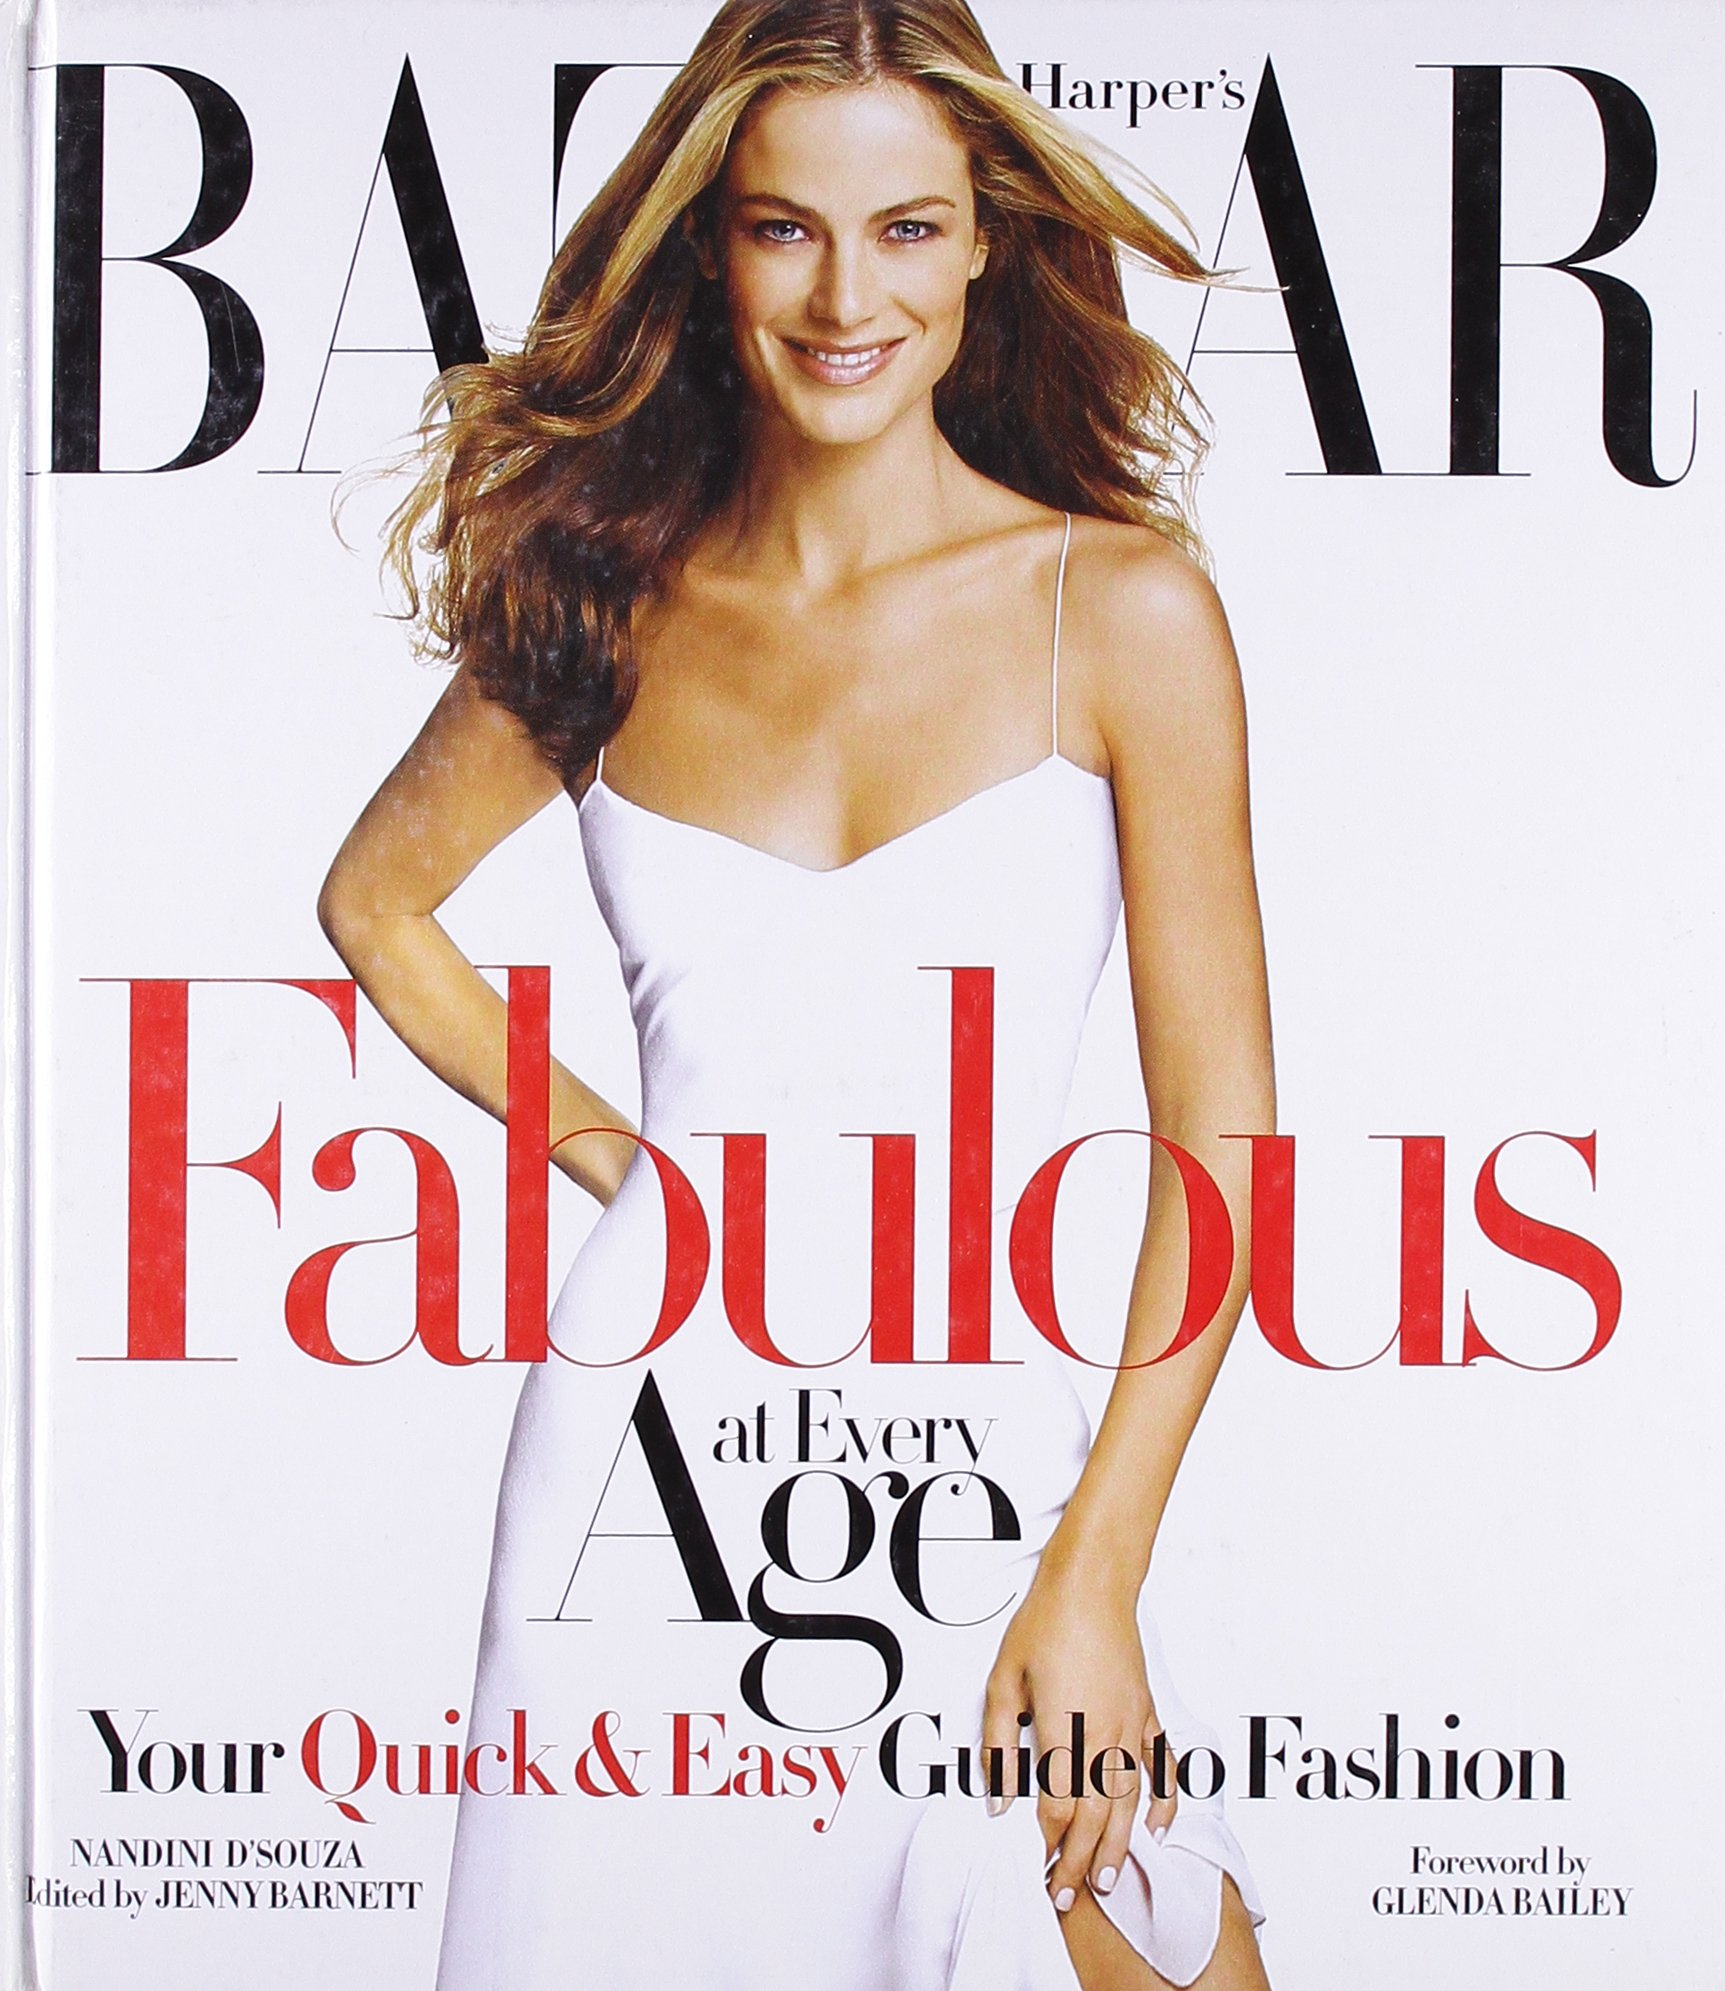 Download Harper's Bazaar Fabulous at Every Age: Your Quick & Easy Guide to Fashion ebook